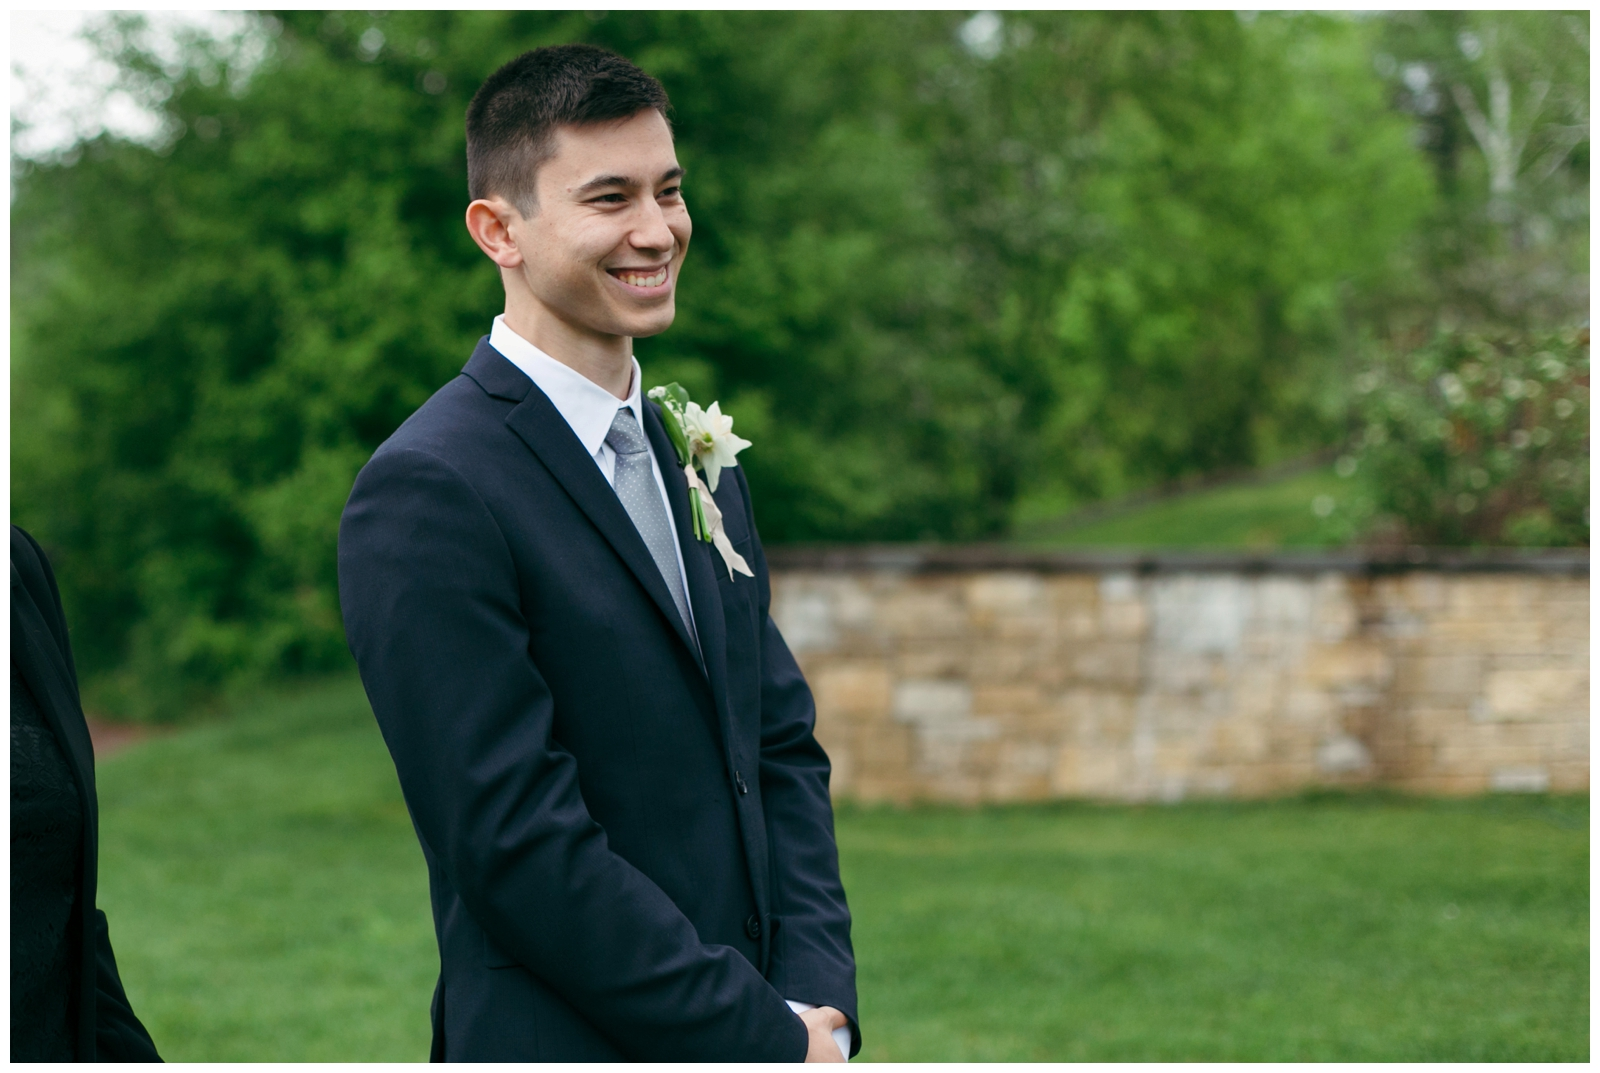 Vermont-Elopement-Topnotch-Stowe-Wedding-Bailey-Q-Photo-Boston-Wedding-Photographer-031.jpg